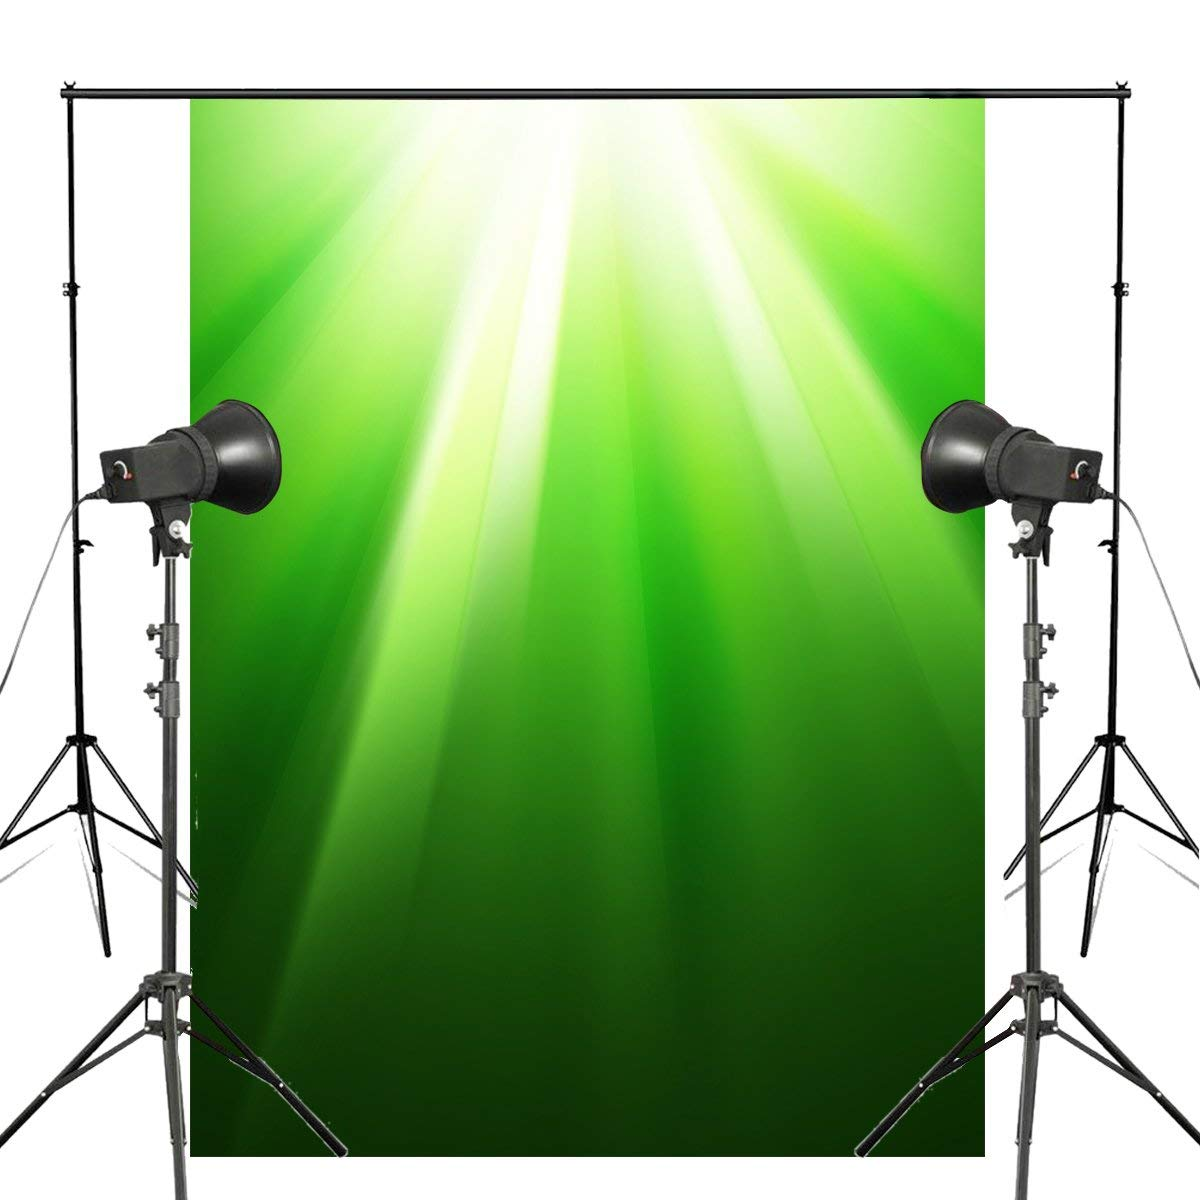 Green Spring Photography Backdrops Sunlight Photo Studio Backgound Wall Photography Background 5x7ft-in Photo Studio Accessories from Consumer Electronics